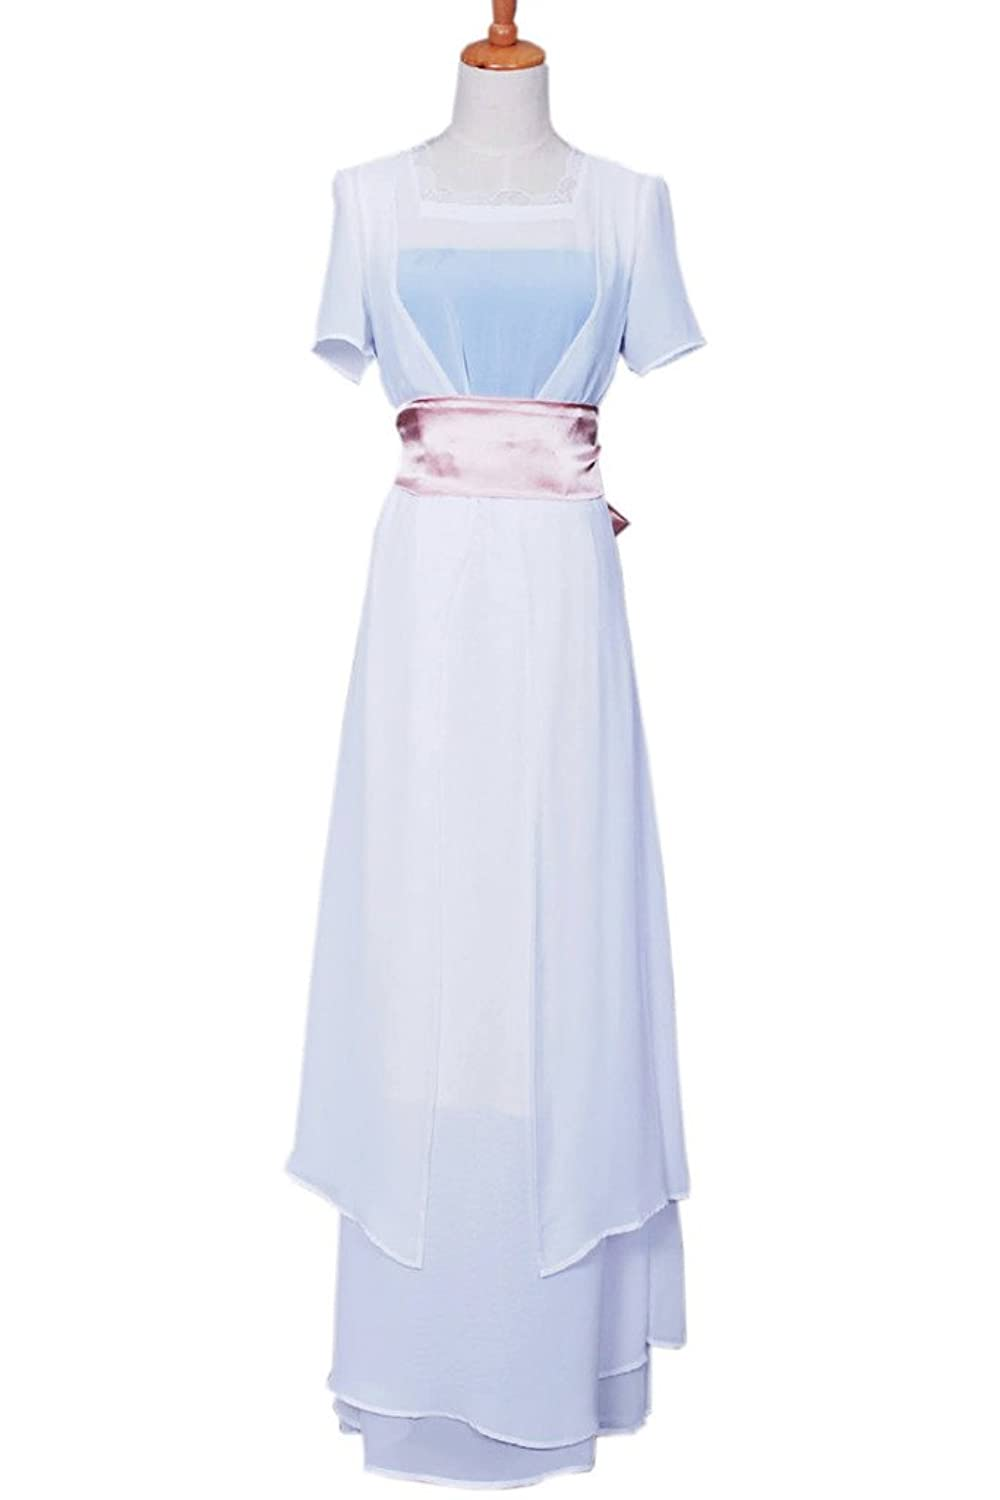 FancyStyle Titanic Cosplay Rose Costume Swim Gown Dress White